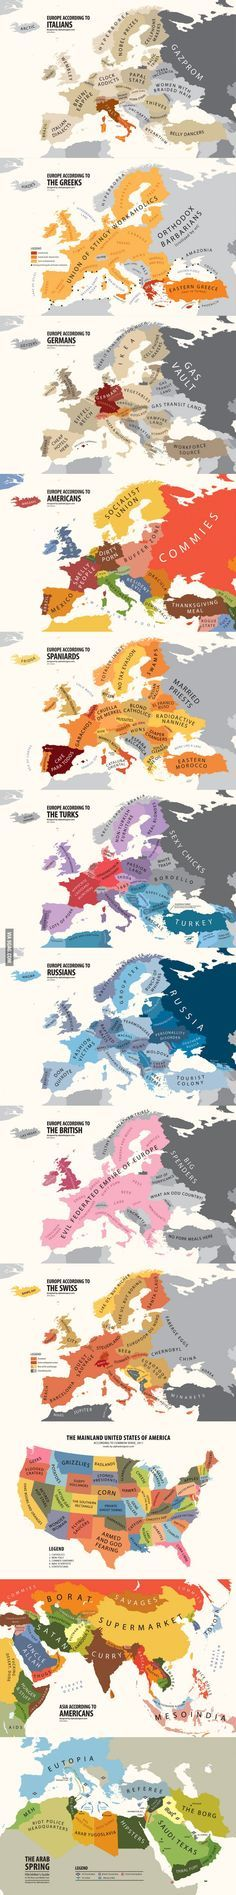 Different ideas of areas according to geography.  Pretty funny and accurate.